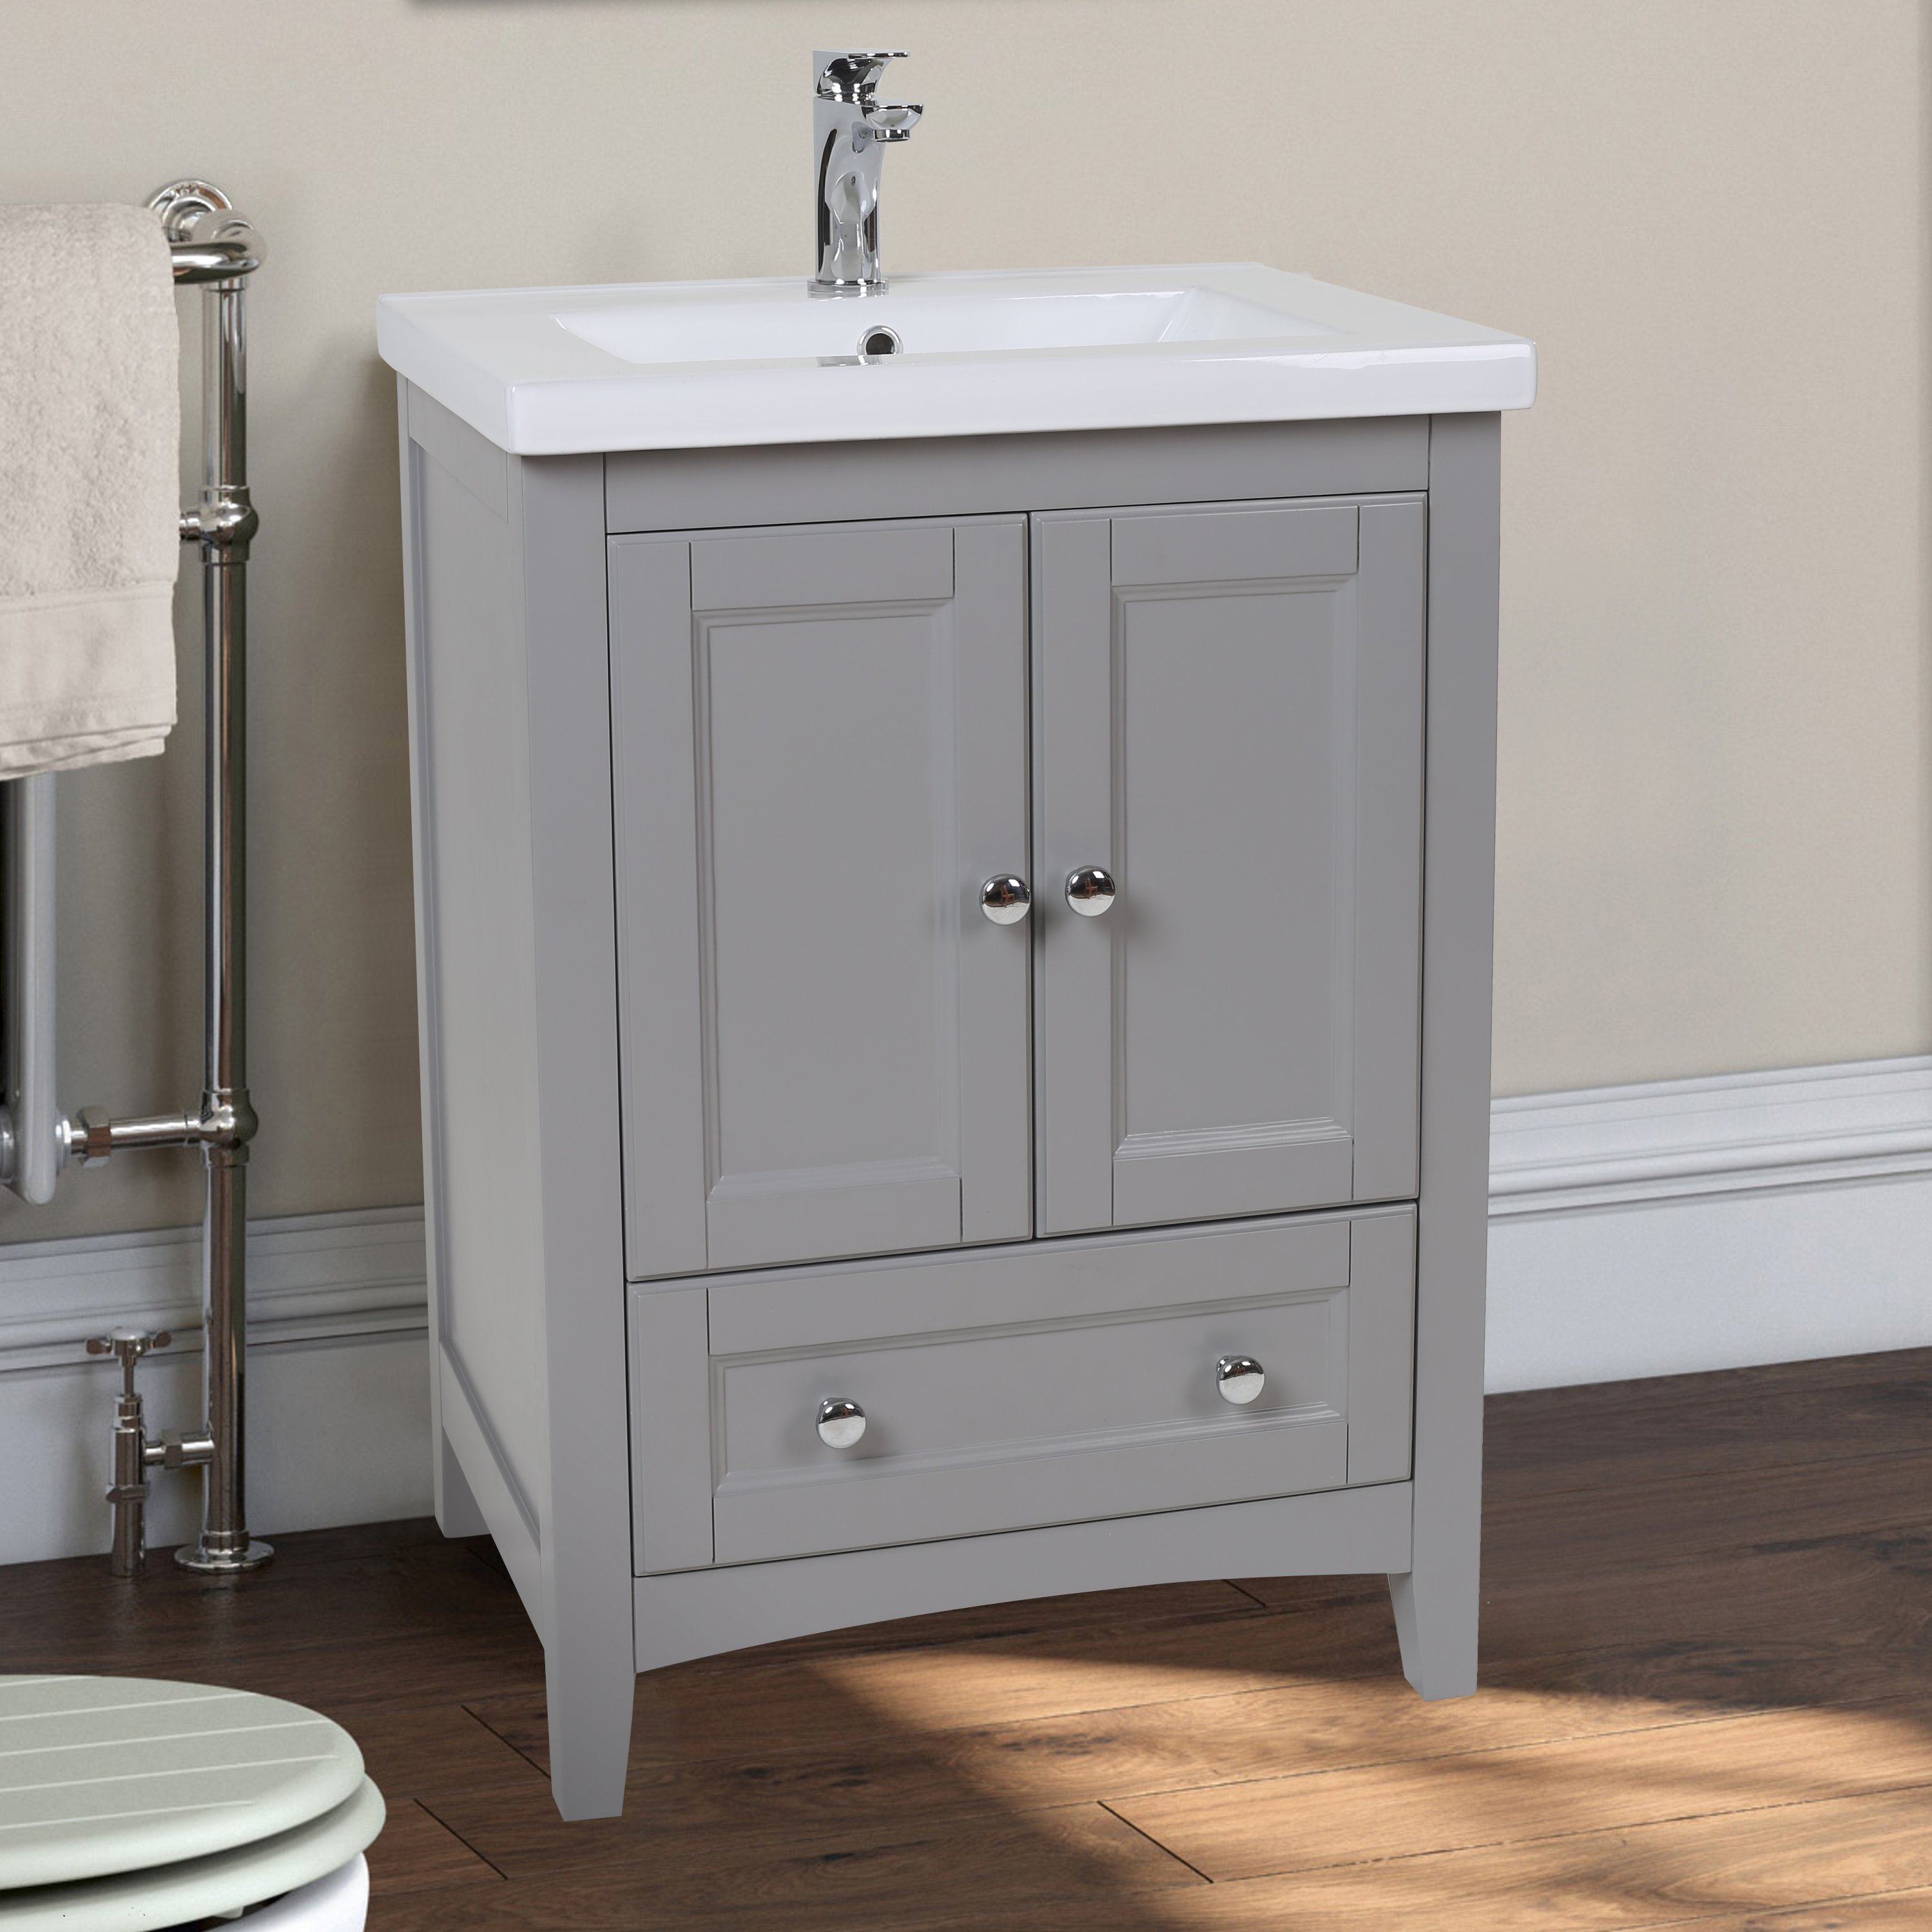 vanity address inch with paige cabinets shower top white and for bathroom winston design home simpli sink astounding bath